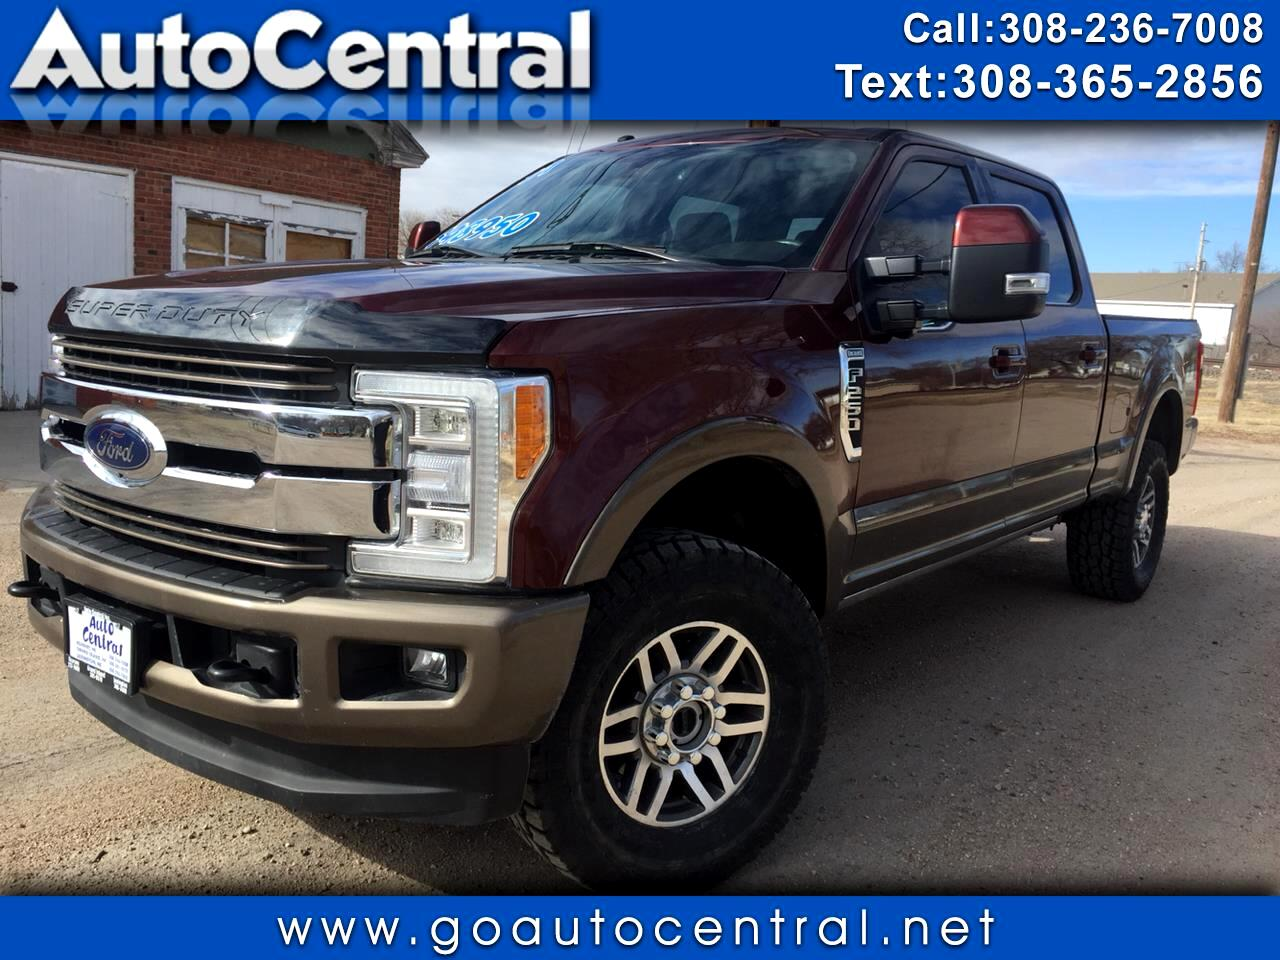 2017 Ford Super Duty F-250 SRW Lariat 4WD Crew Cab 8' Box